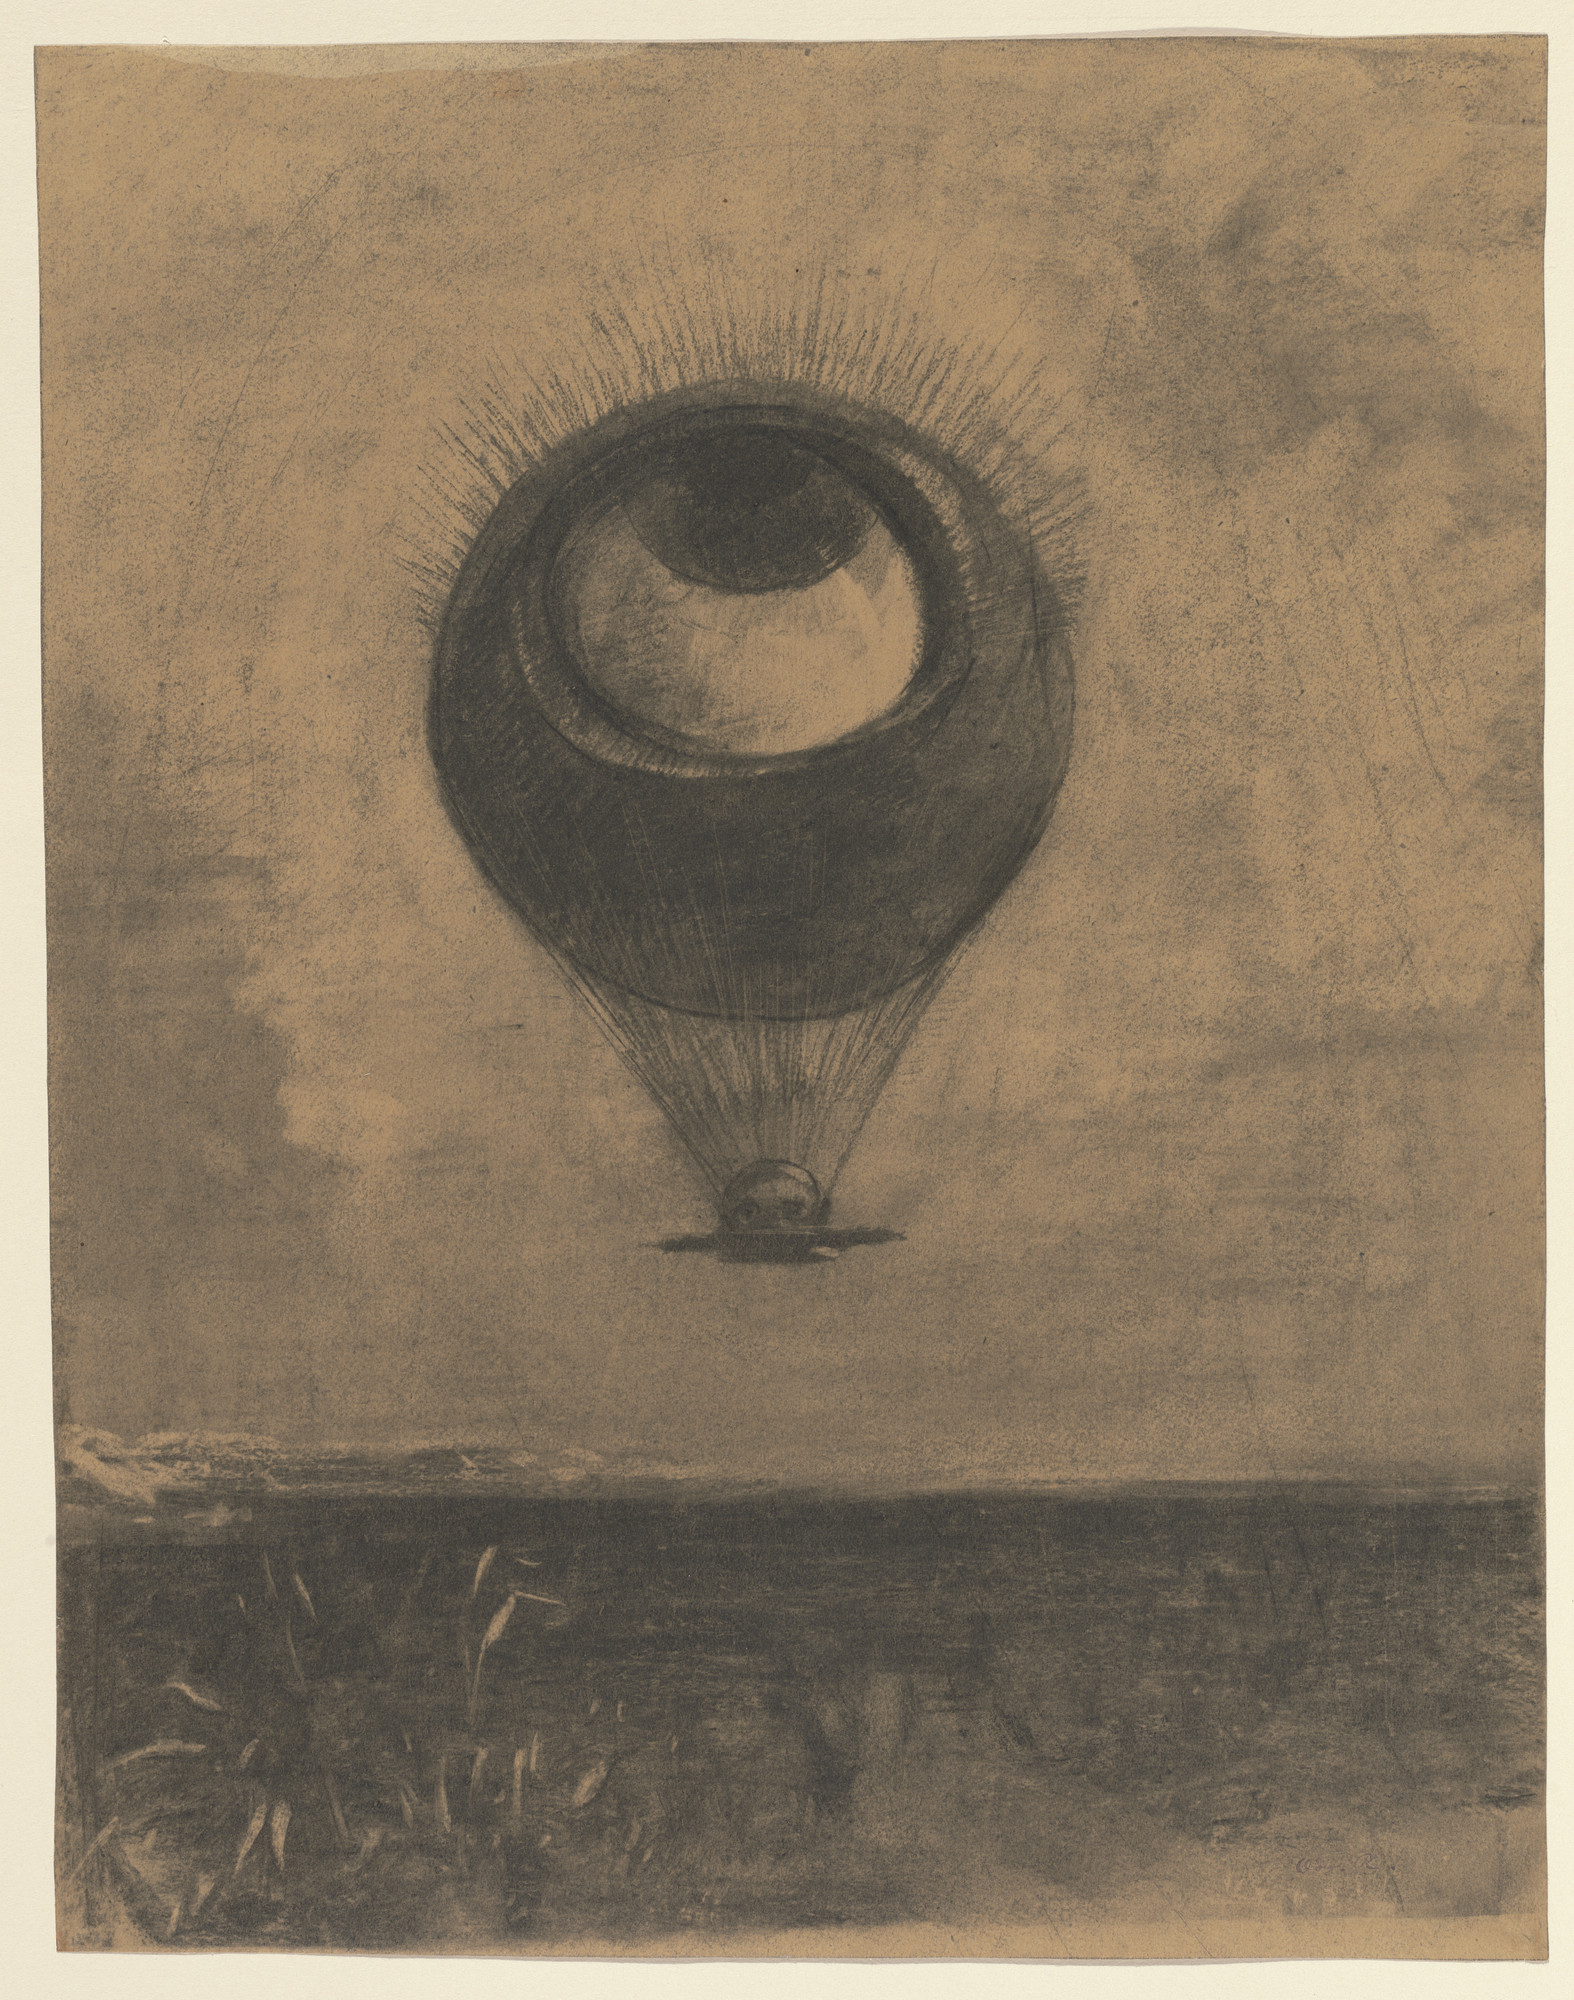 Odilon Redon Eye-Balloon (Œil-ballon) 1878